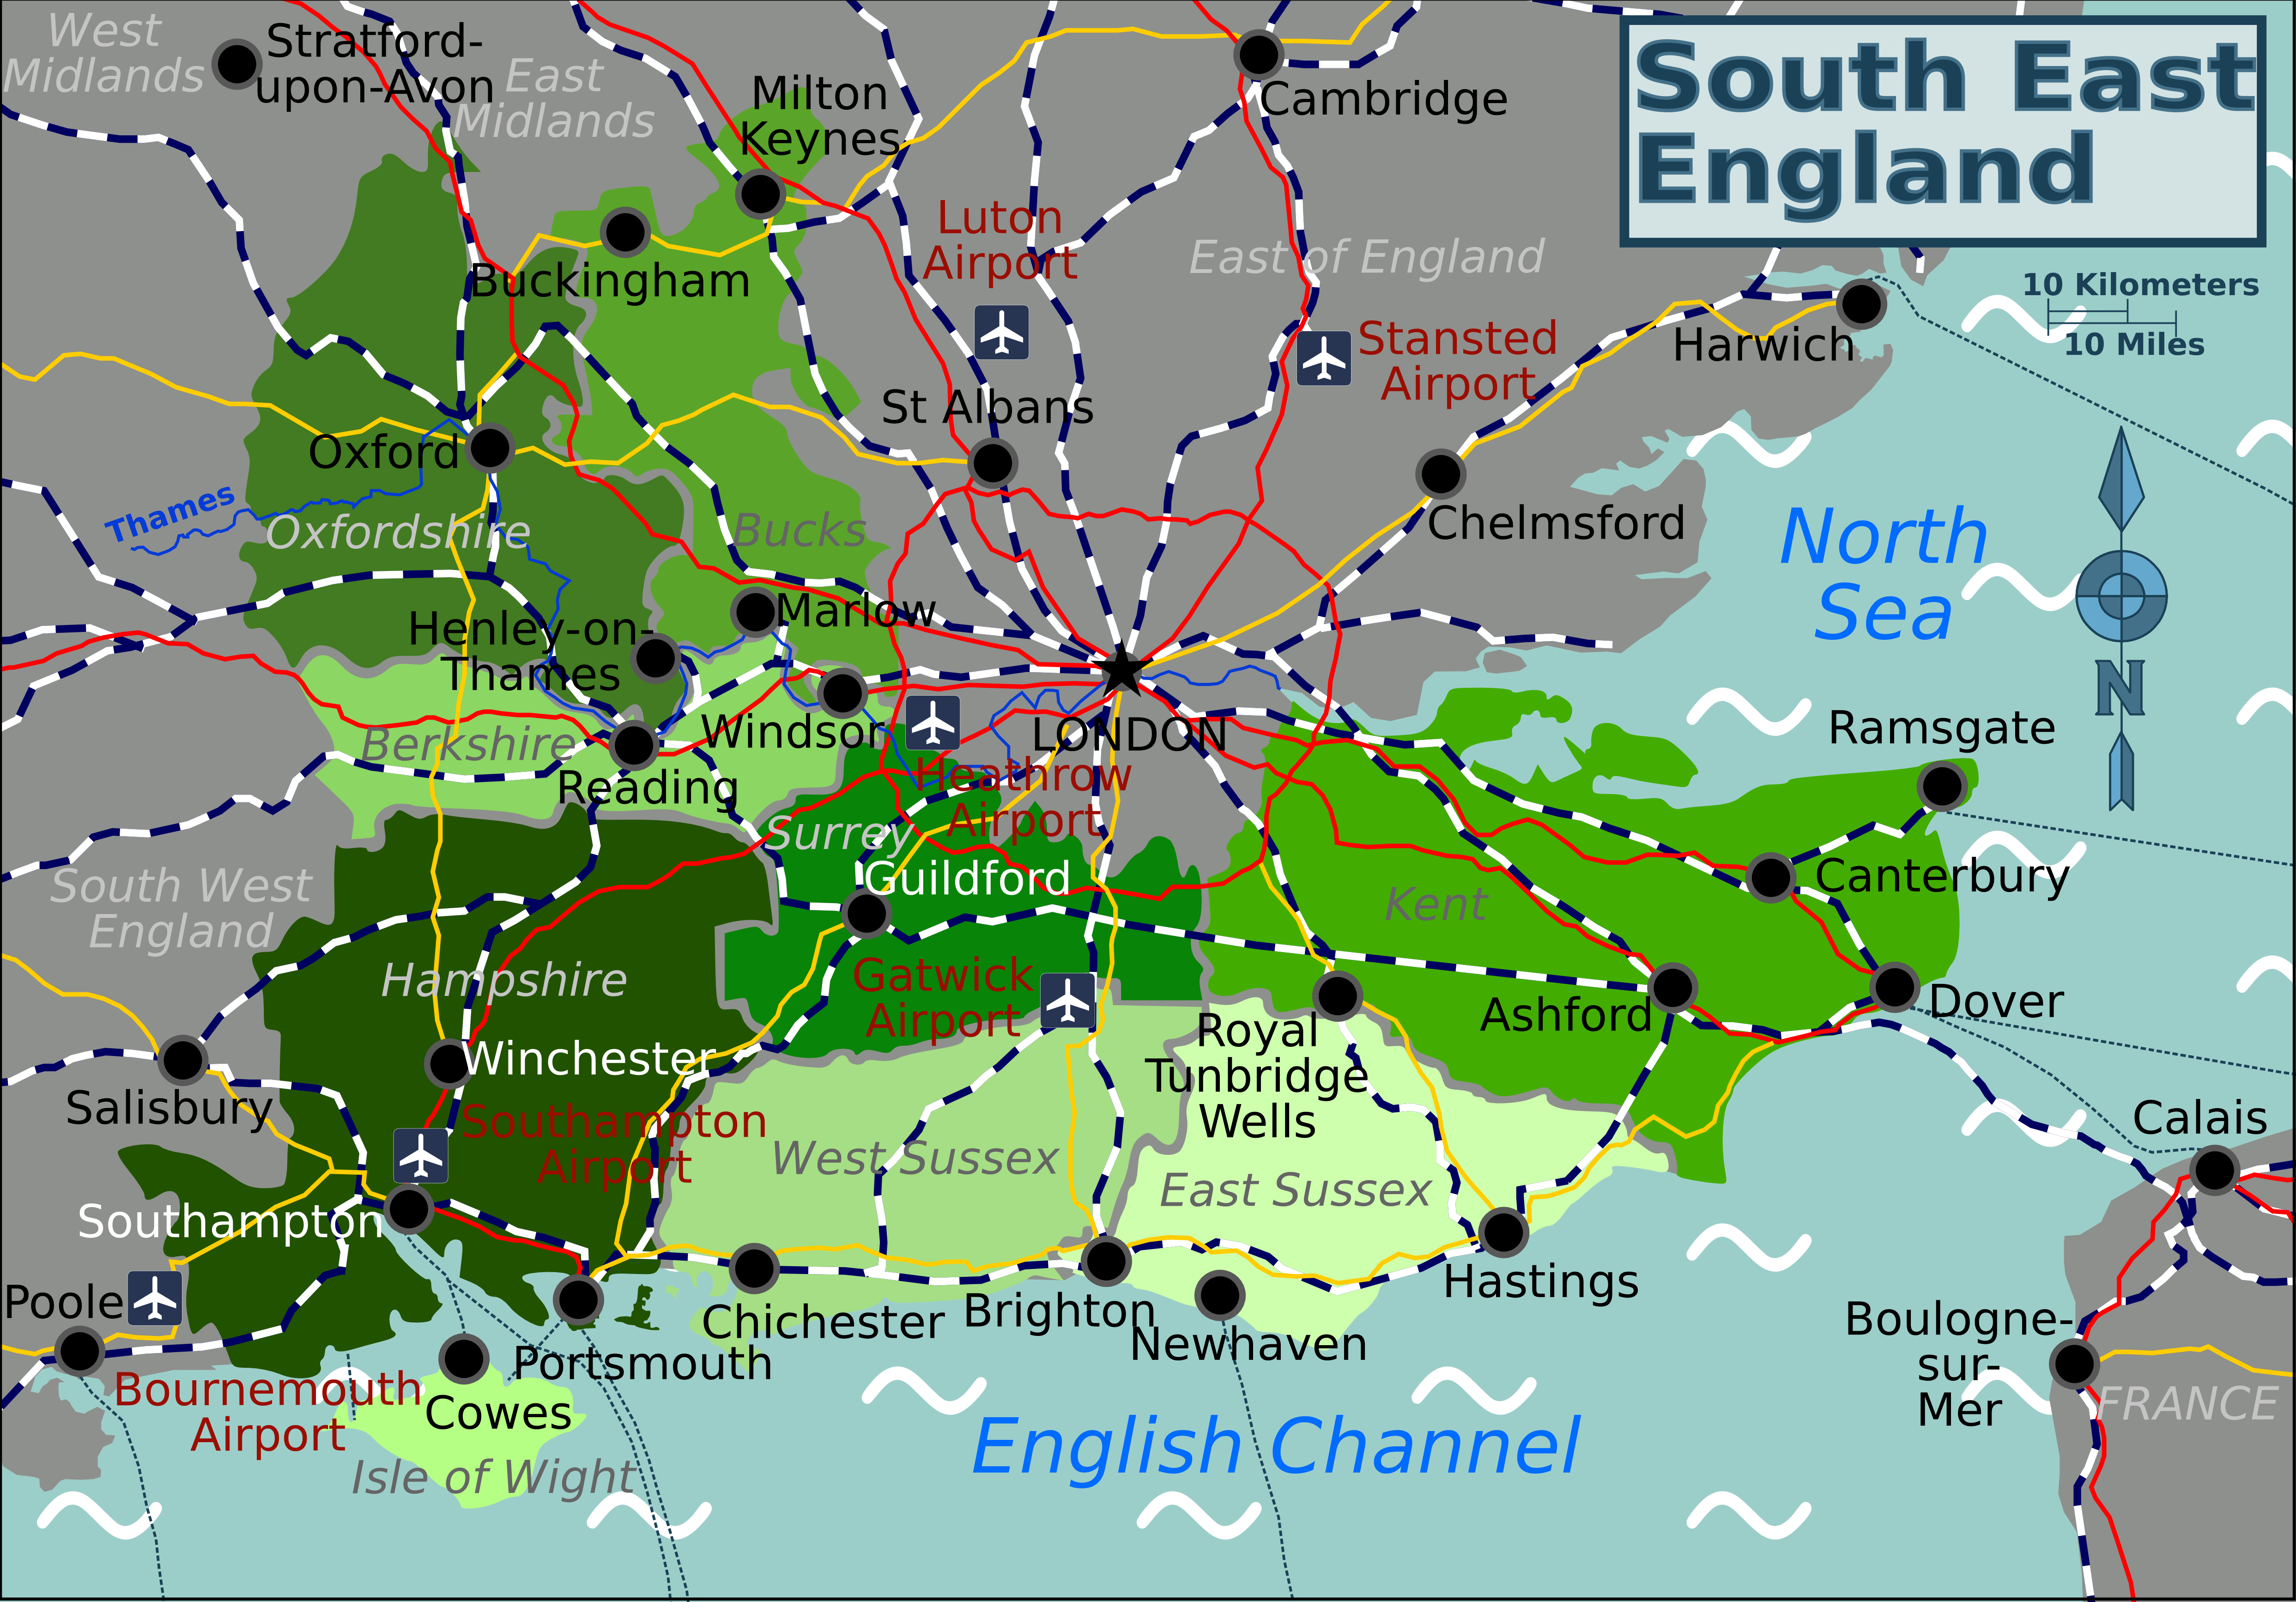 South East Of England Map.File South East England Map Png Wikimedia Commons